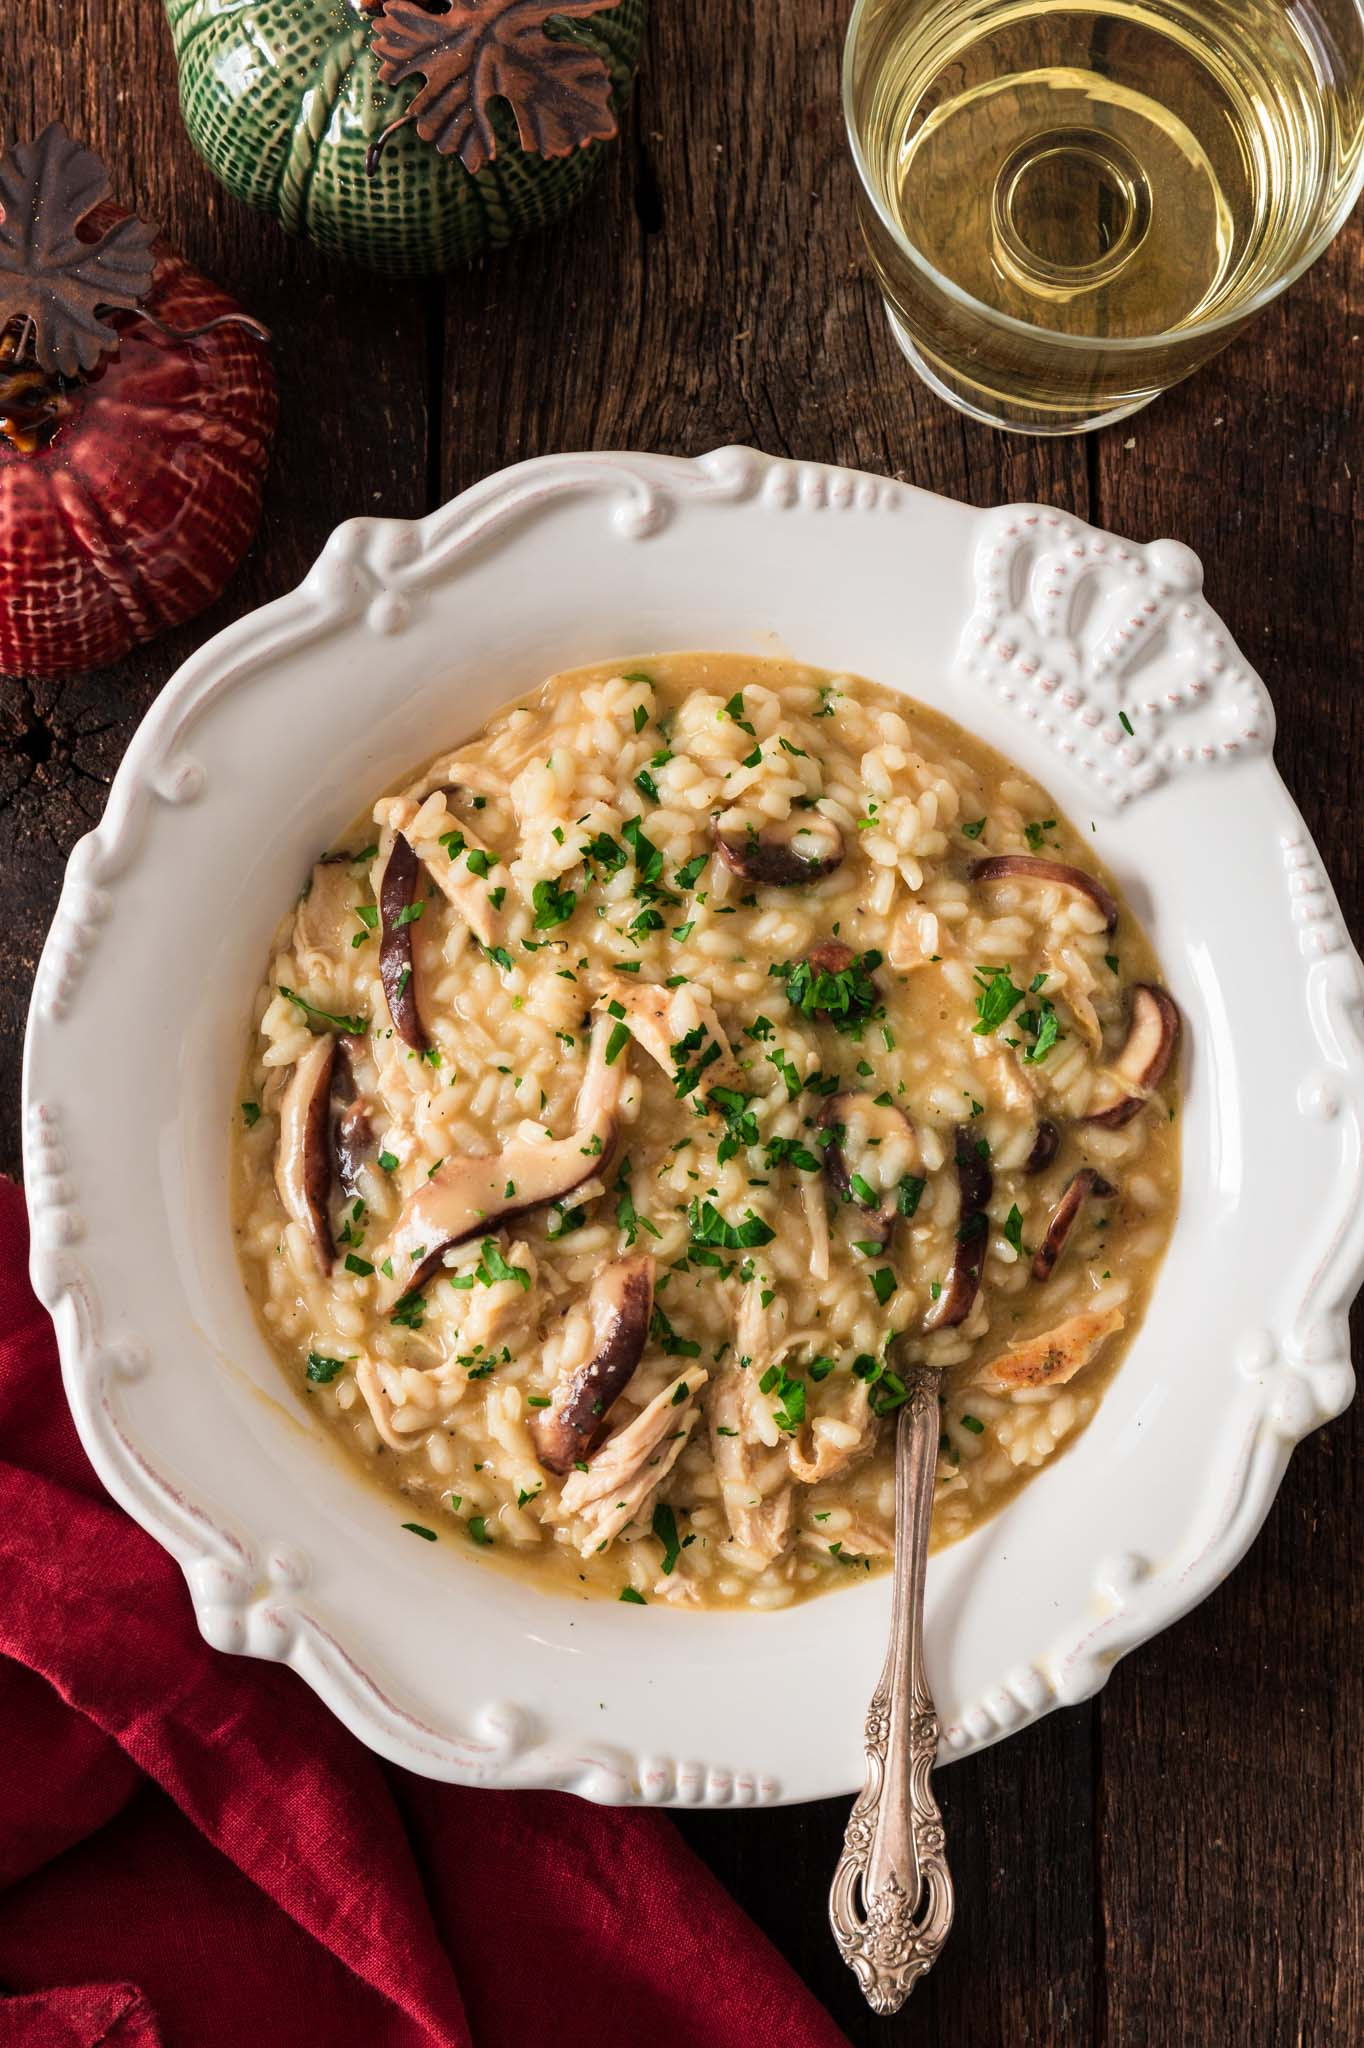 Mushroom and Turkey Risotto | www.oliviascuisine.com | Hosting an intimate, low key Thanksgiving/Friendsgiving? Ditch the whole bird for this elegant Mushroom and Turkey Risotto instead. Also great as a way to use day-after leftovers. (Recipe and food photography by @oliviascuisine.)